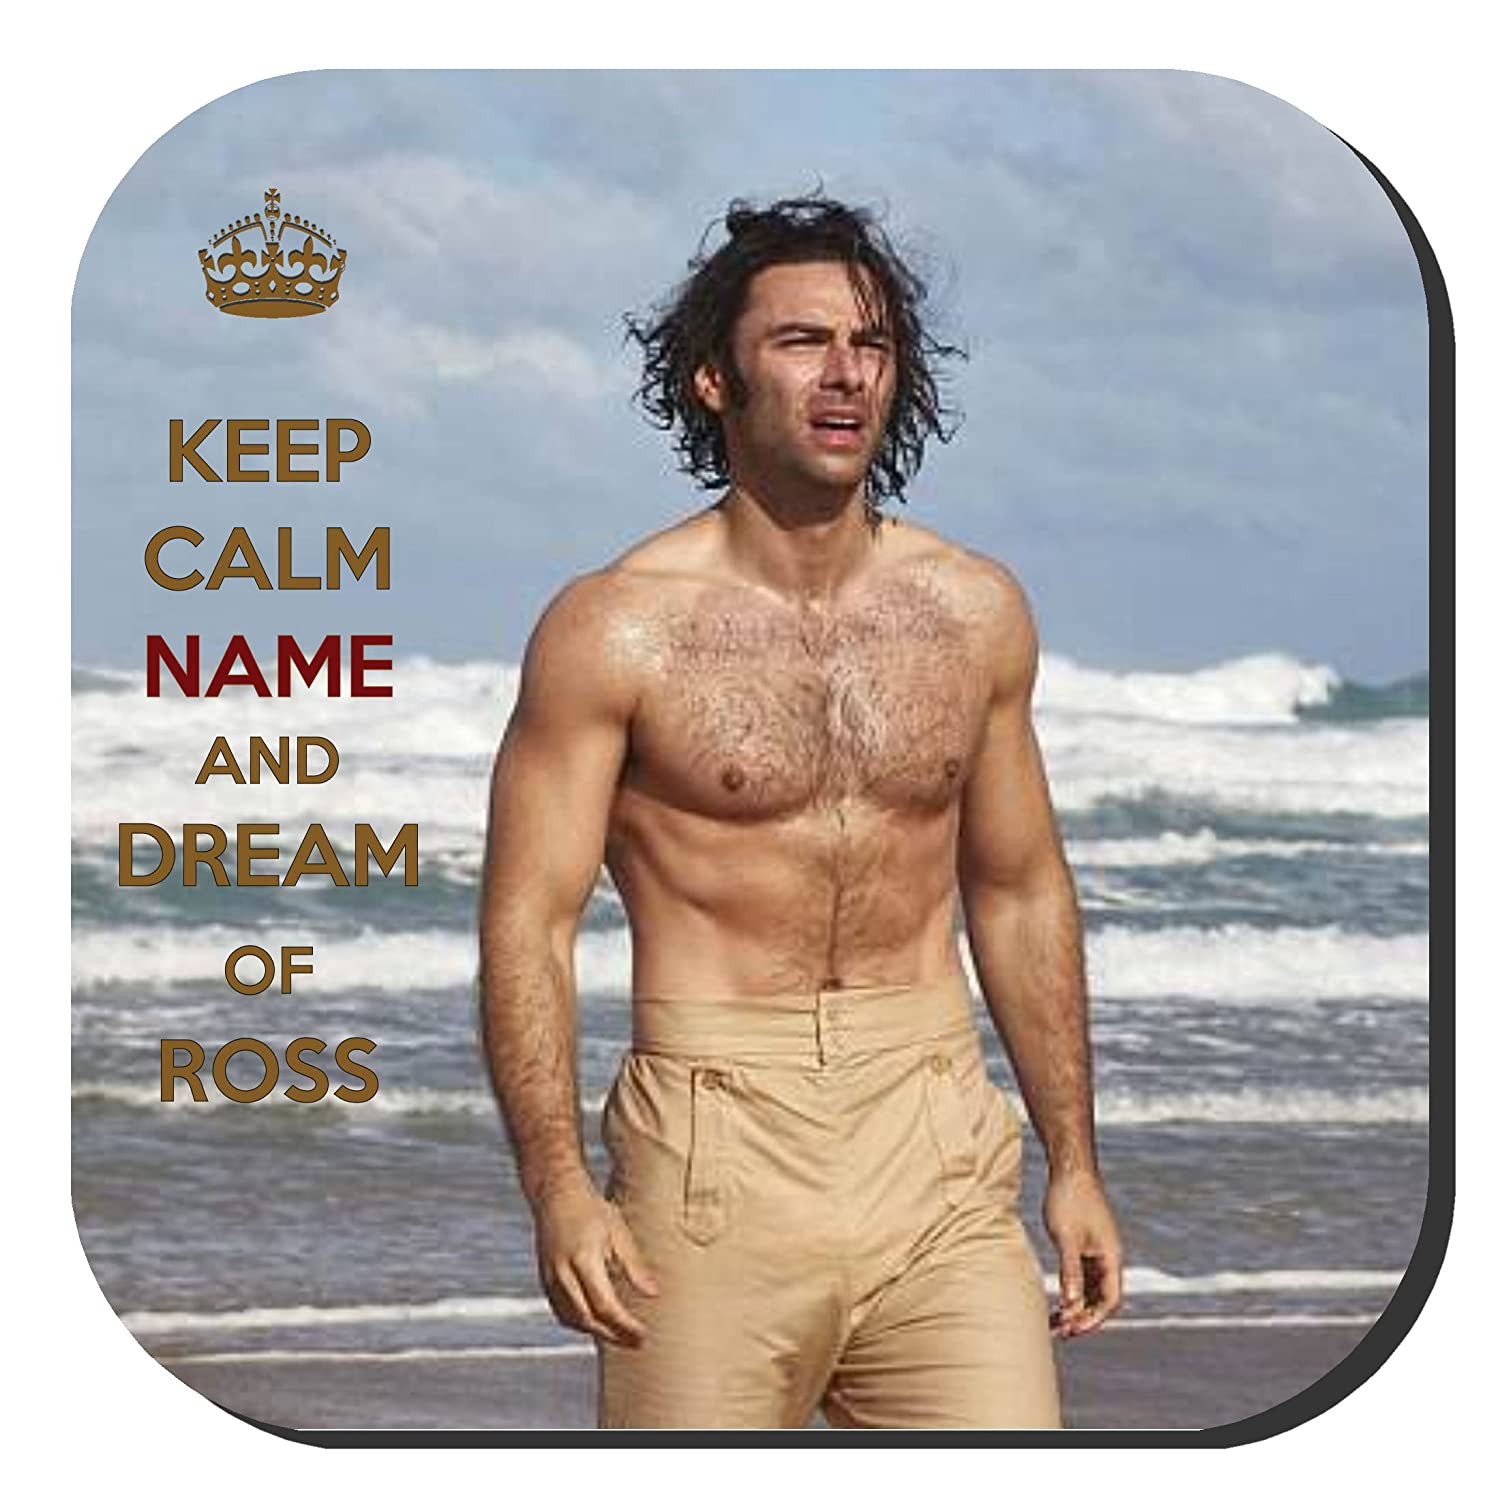 KEEP CALM (NAME) AND DREAM OF ROSS Customised with Recipient's Name Drinks Coaster with an image of a bare chested Ross Poldark played by Aiden Turner in the New Season 4 of the BBC TV series Poldark.   B07DJDKCK1